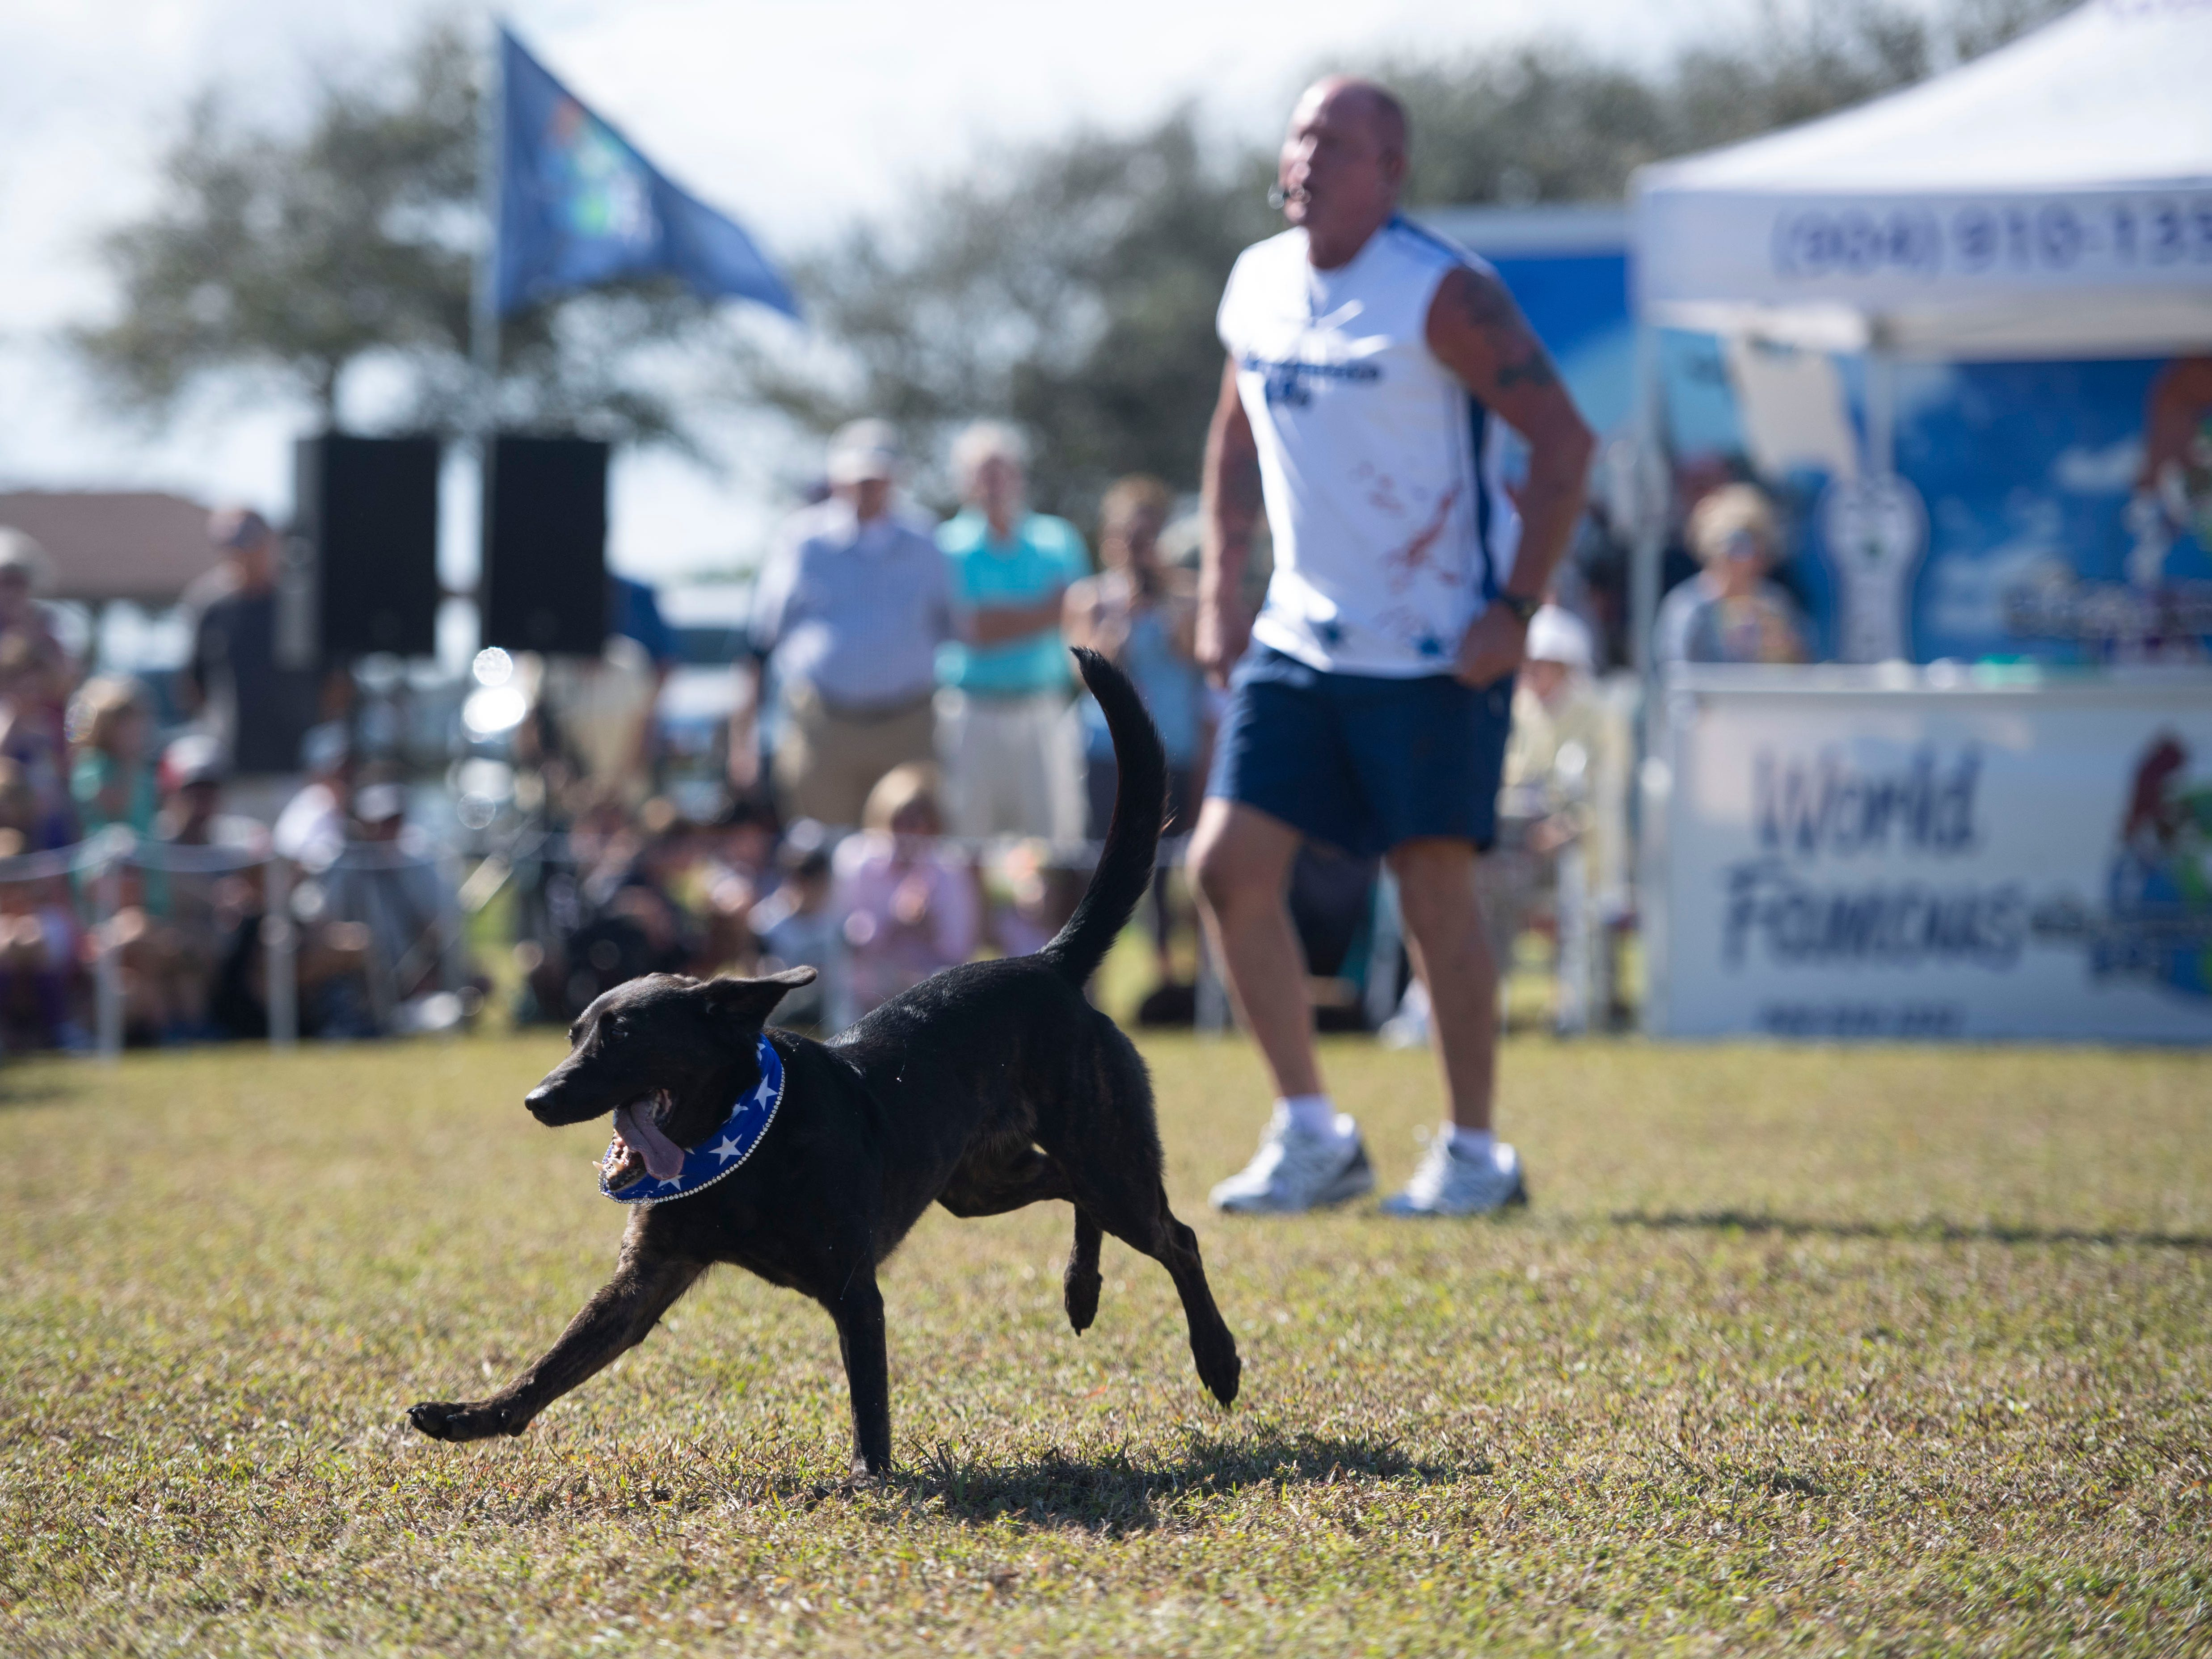 "Disc-Connected K9's trainer Lawrence Frederick and Coppertop perform frisbee tricks to a delighted audience Saturday, Jan. 12, 2019, during the Humane Society of Vero Beach and Indian River County's sixth annual Bark in the Park at Riverside Park in Vero Beach. Hundreds of people and their dogs came to the event that featured the frisbee acts, the Ultimate Dock Diving Dogs, a kids zone, lure curse, the Humane Society's Mobile Adoption Unit and vendors. ""The purpose of Bark in the Park is to bring the community's pet lovers together and to celebrate the human, animal bond,"" said Kate Meghji, executive director of the Humane Society. ""Watching dogs be dogs is pretty much the most entertaining and heartwarming thing ever,"" she said."